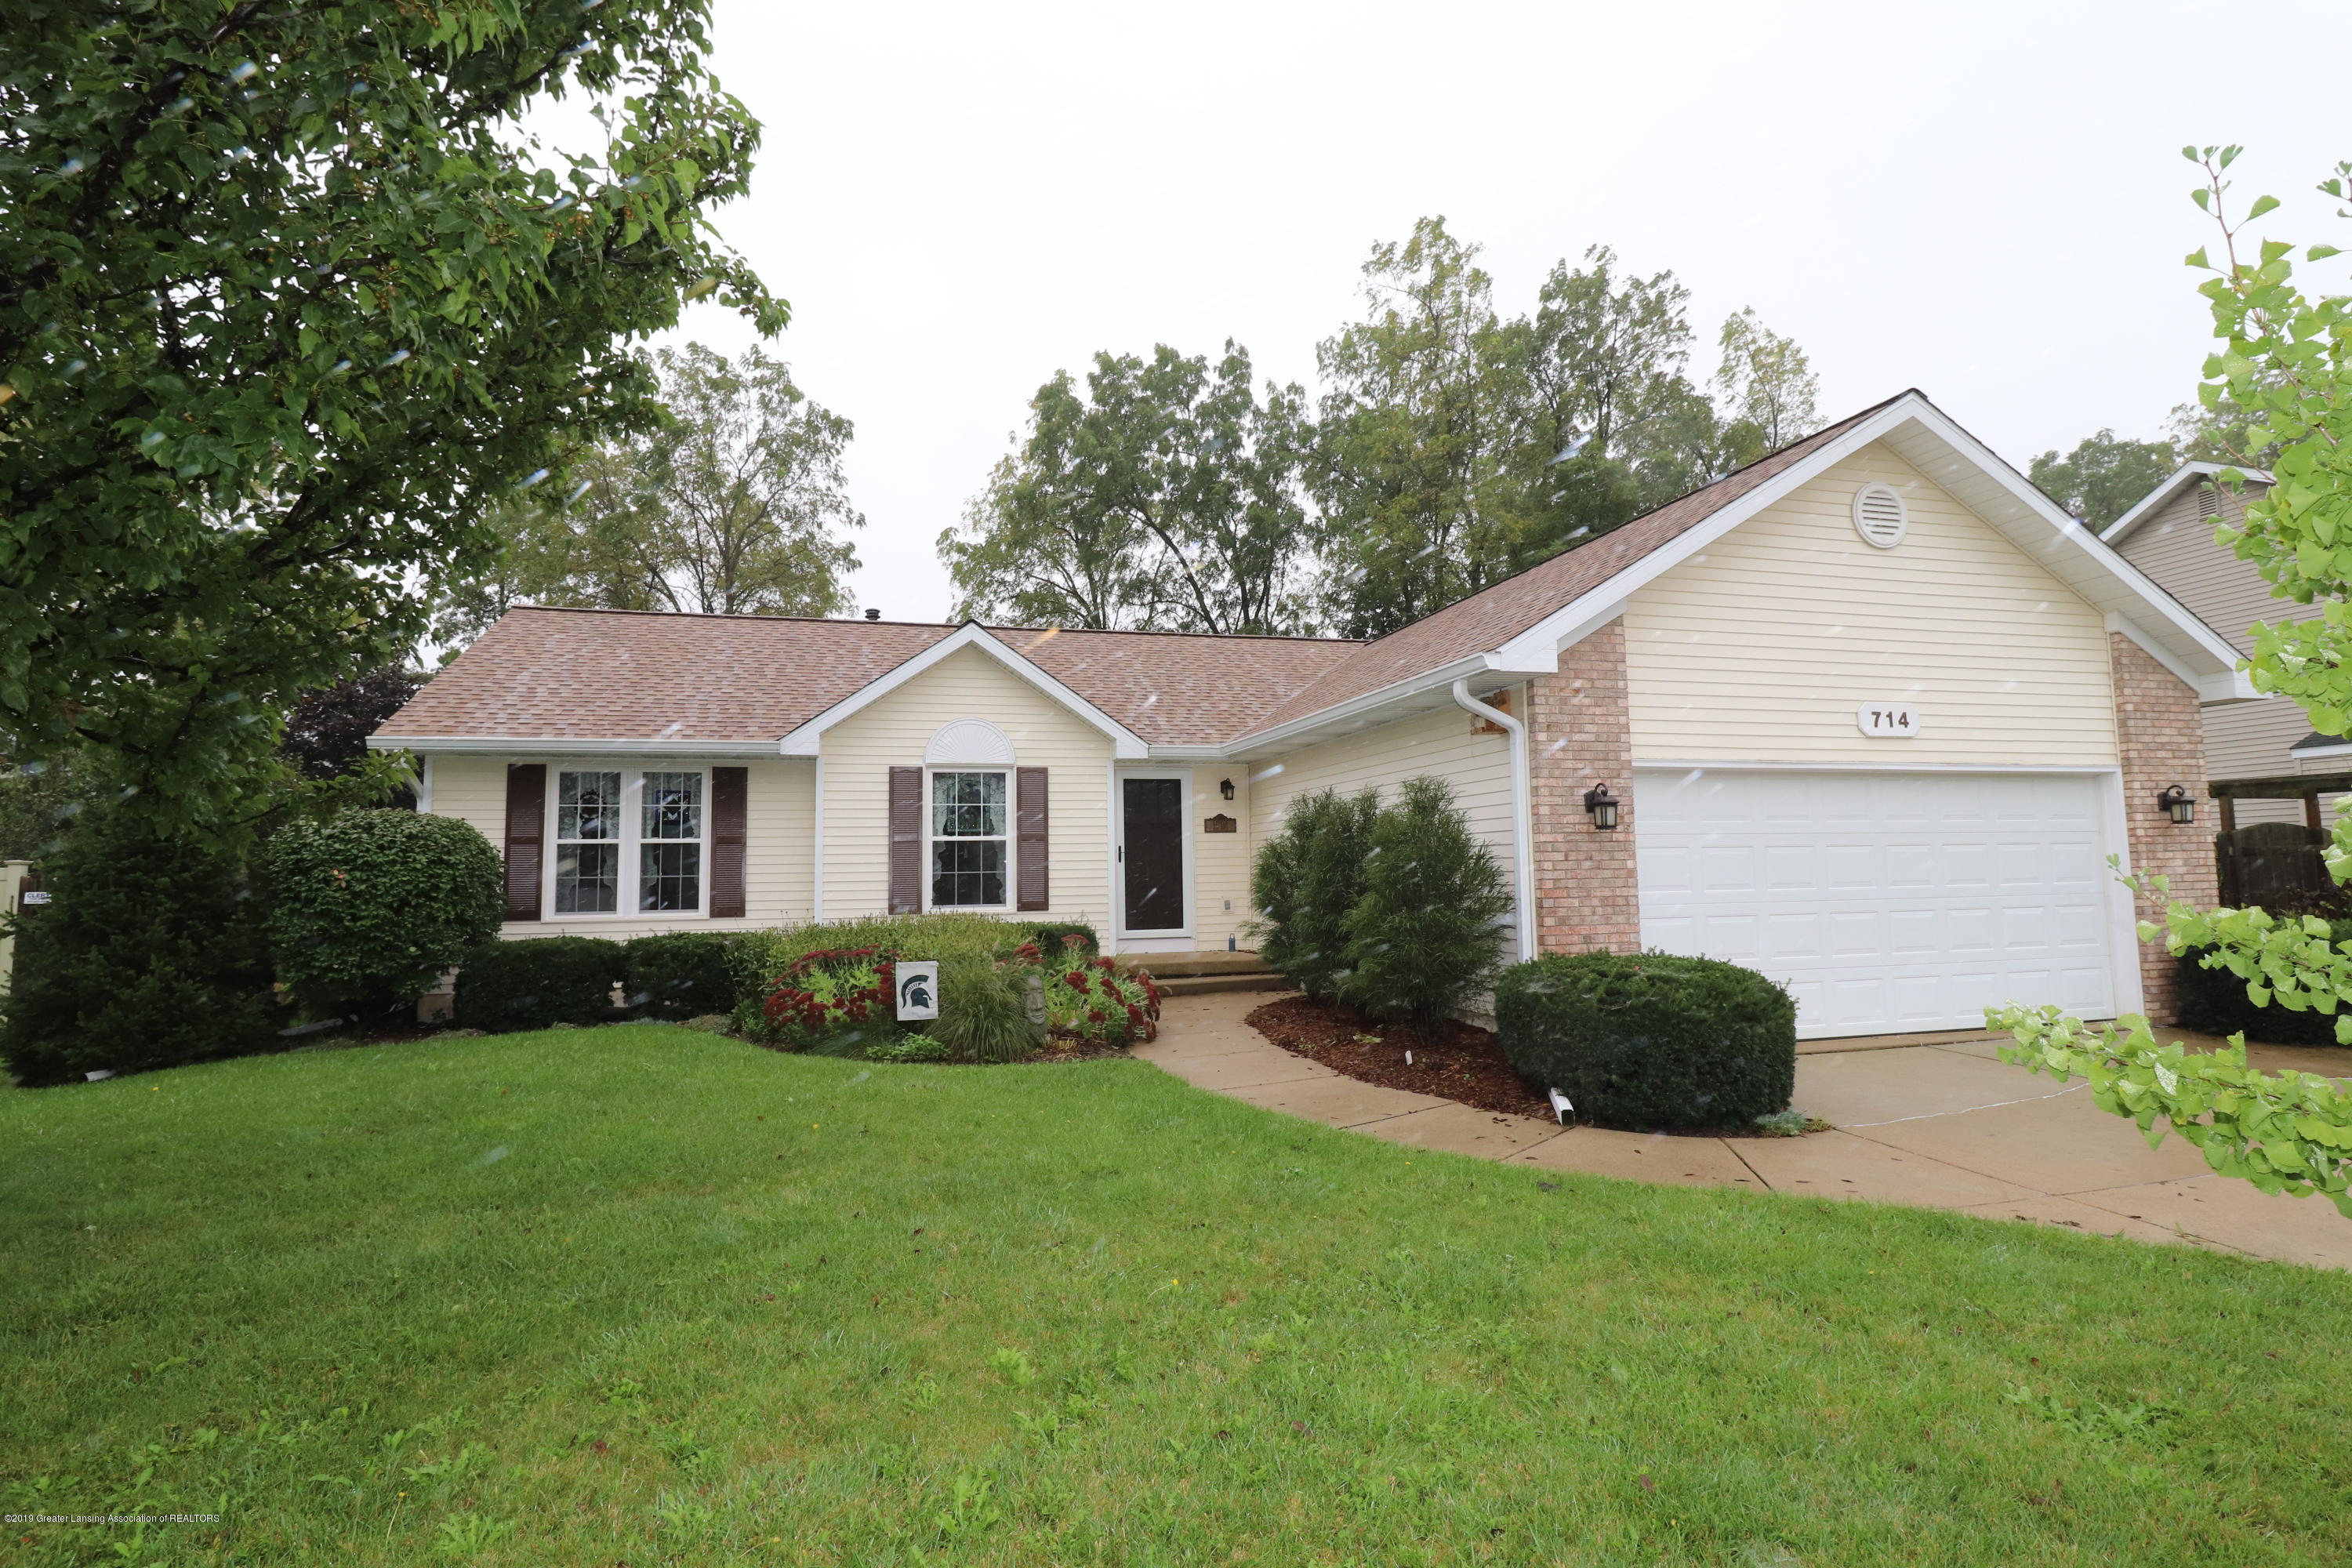 714 Fieldview Dr - IMG_1180 - 1